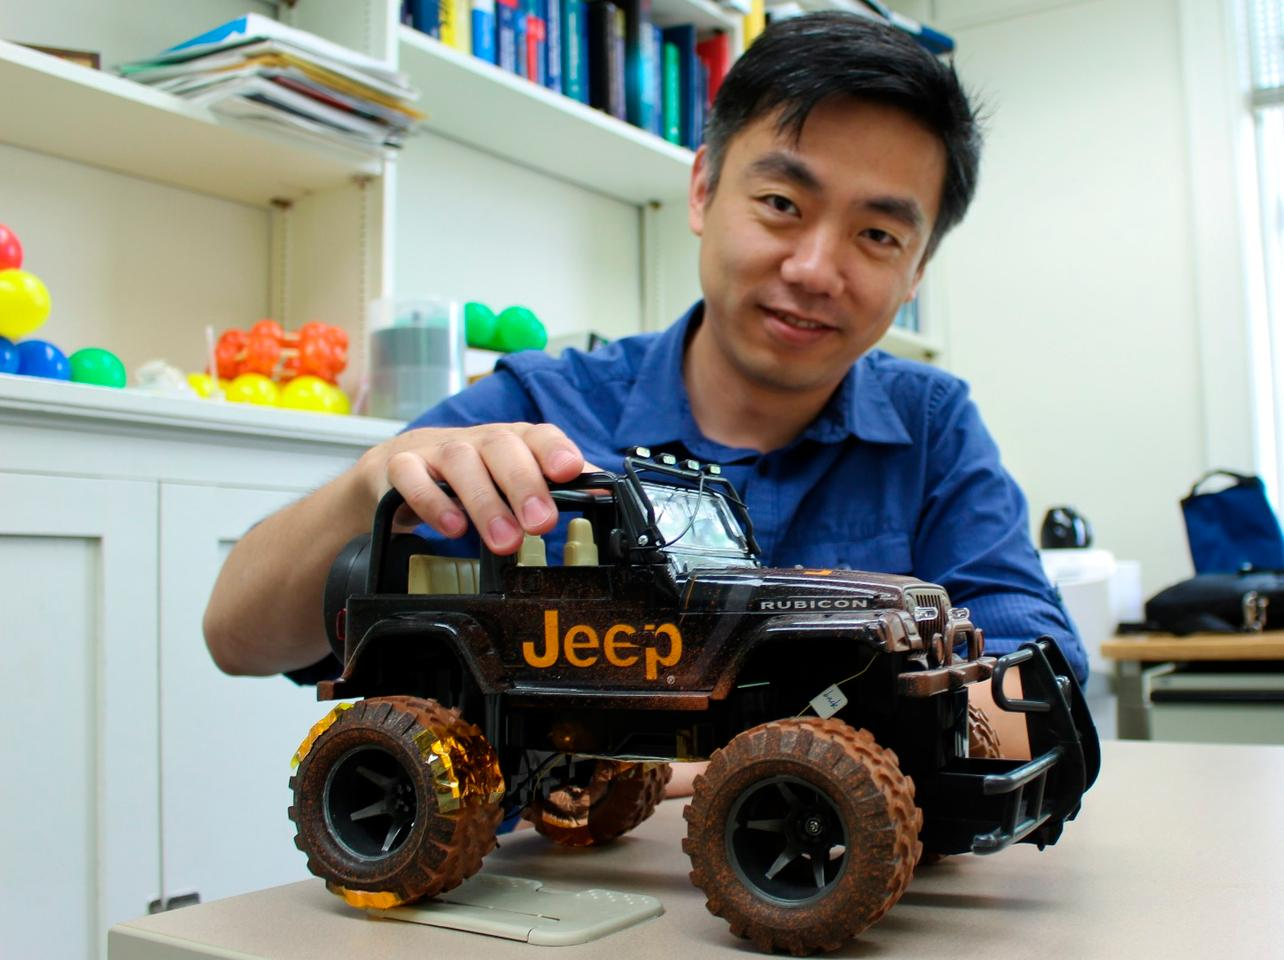 Xudong Wang's team has developed a new way to harvest energy from rolling tires. The researchers used toy cars during the initial trials